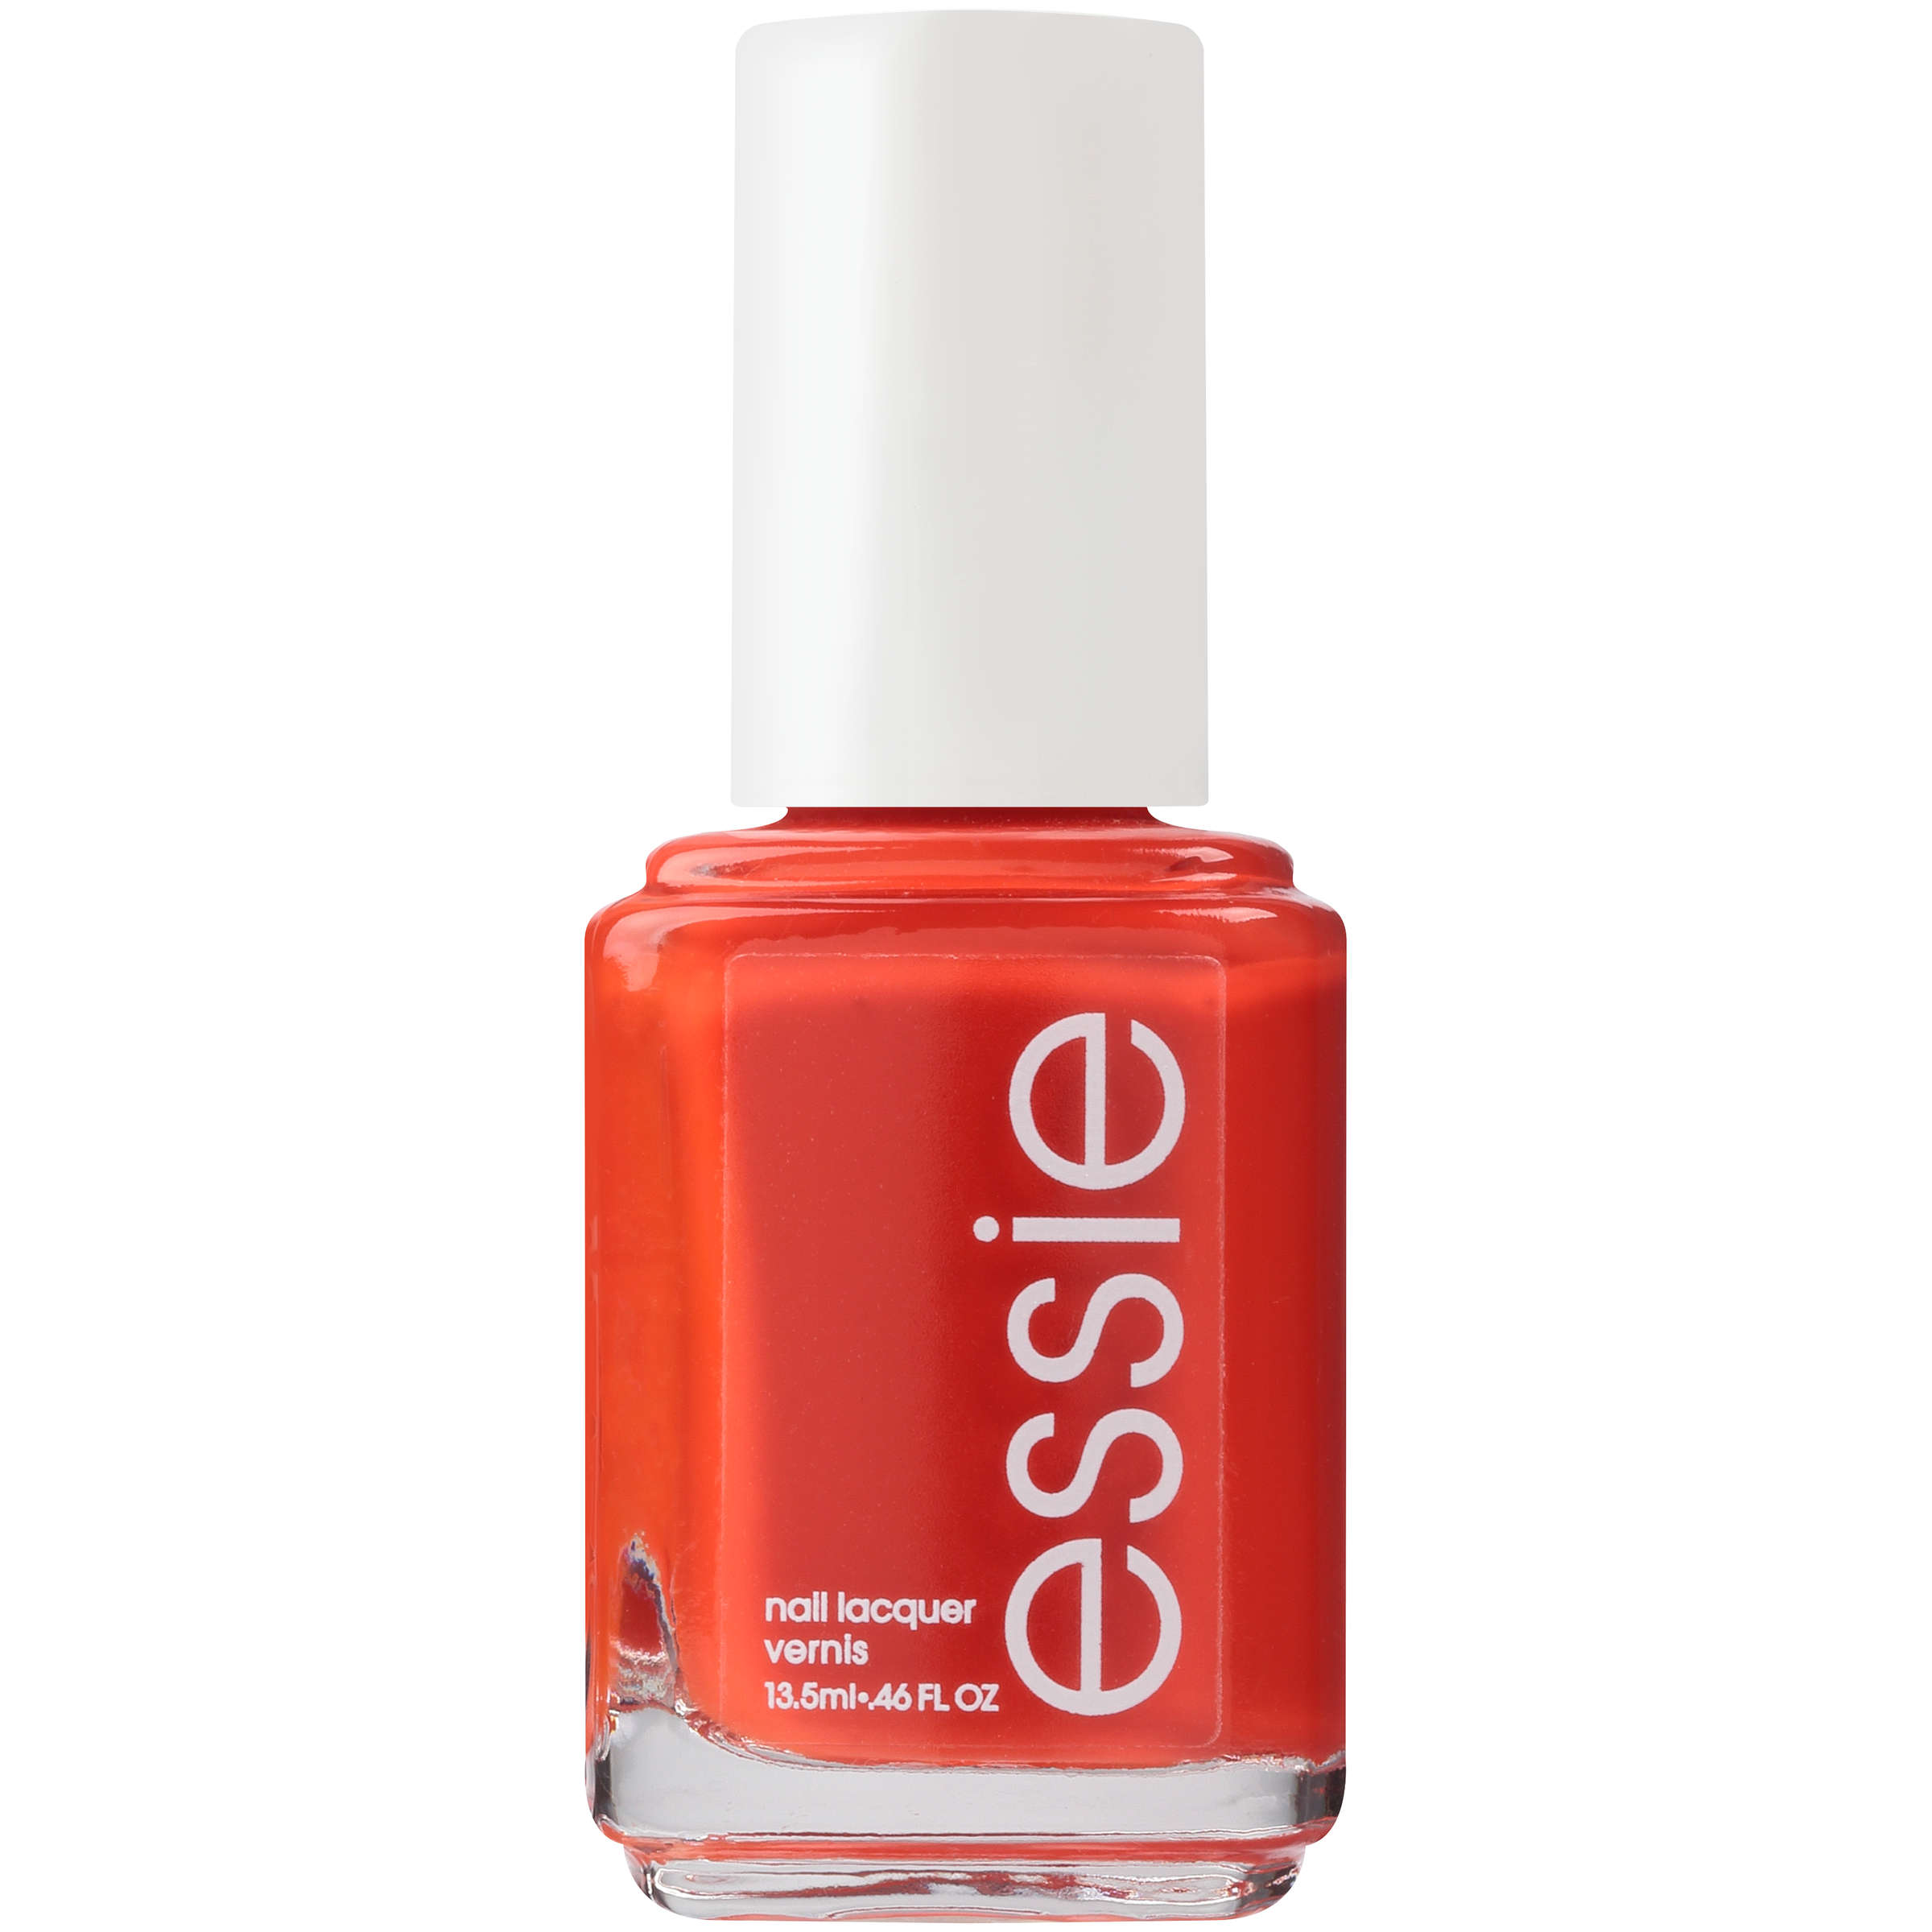 Essie Nail Polish (Corals) Meet Me At Sunset, 0.46 fl oz - Walmart.com